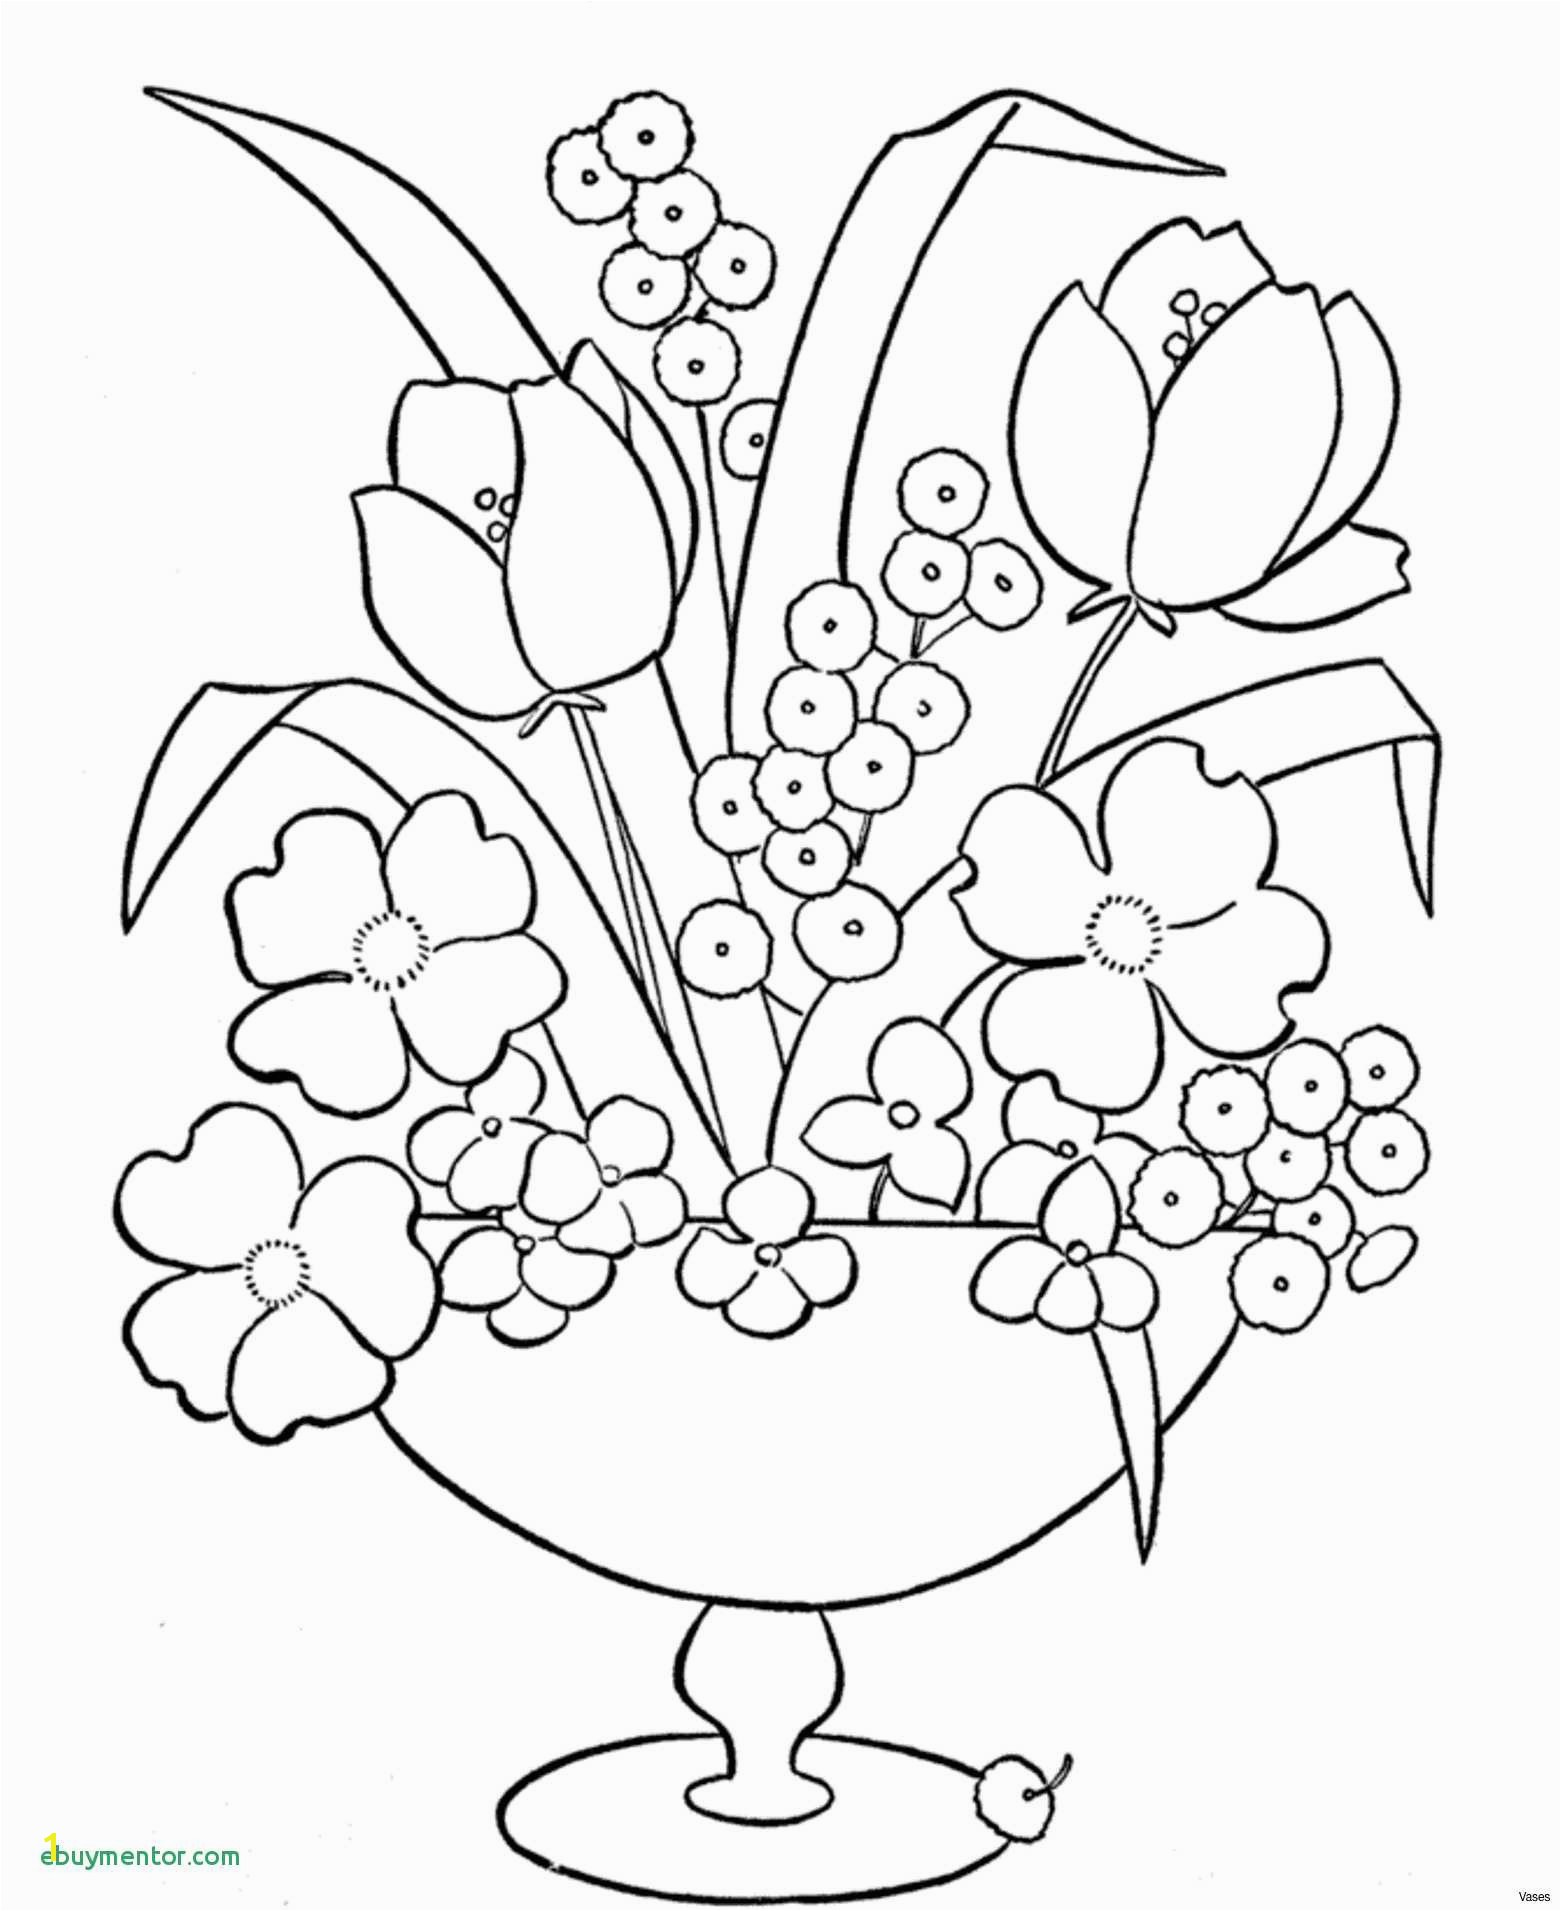 Printable Fairy Coloring Pages Coloring Pages Barbie Fairy New Coloring Pages for Girls Lovely